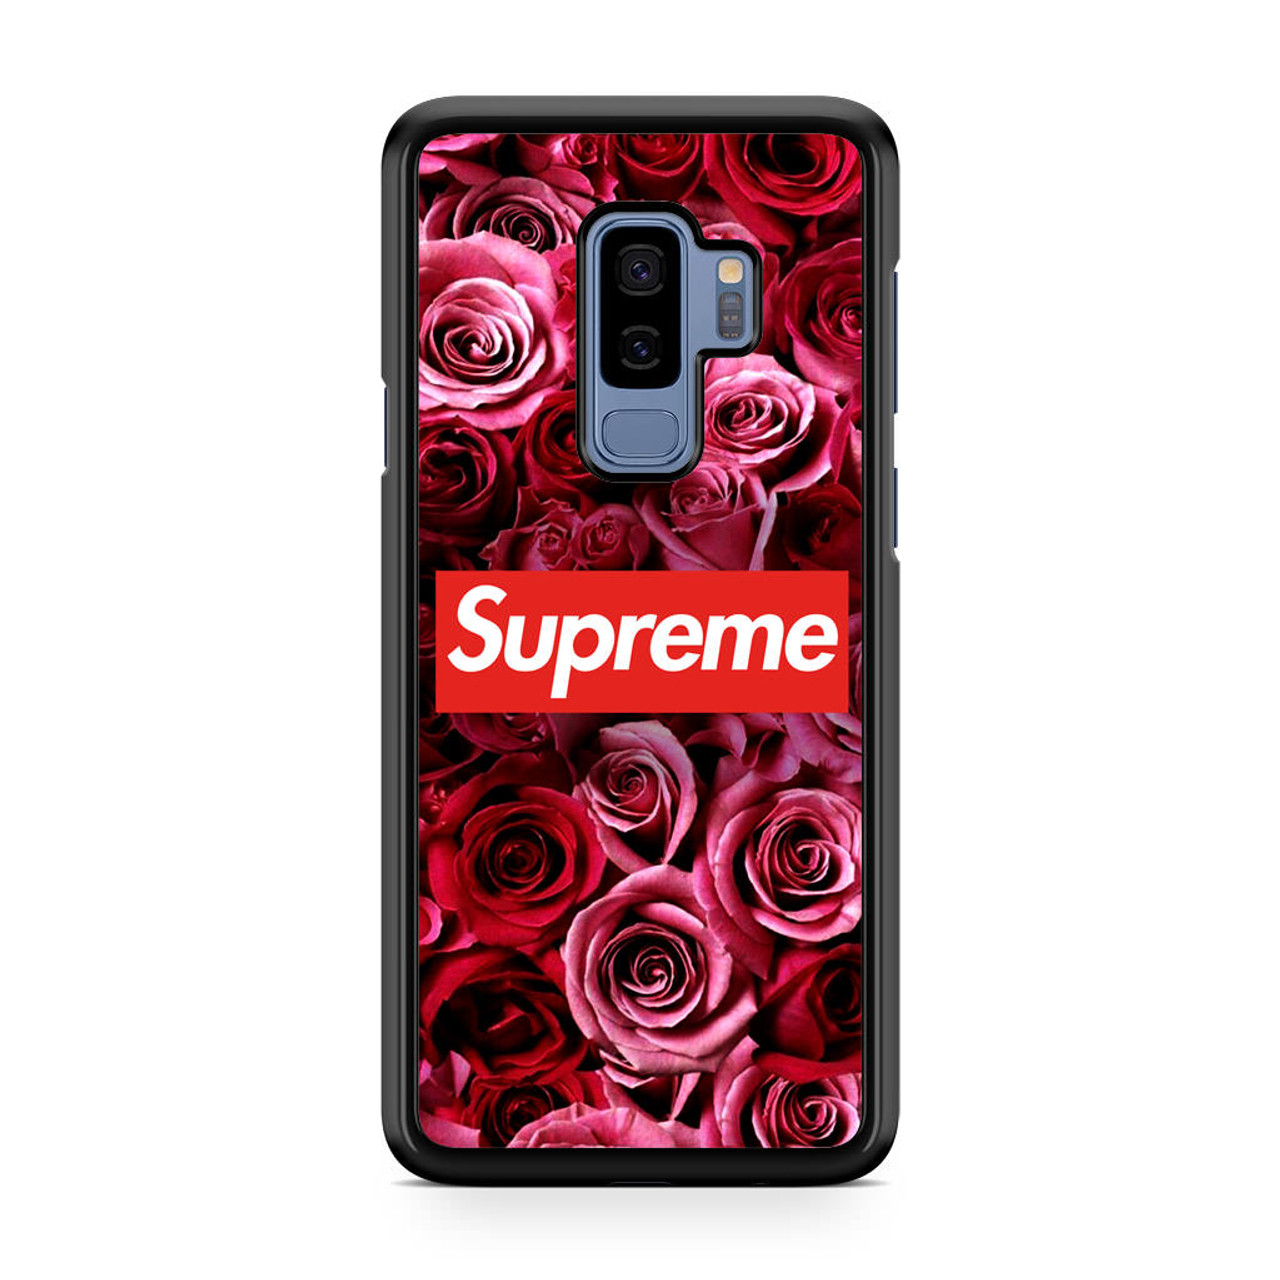 sneakers for cheap 87ad3 65b30 Supreme In Roses Samsung Galaxy S9 Plus Case